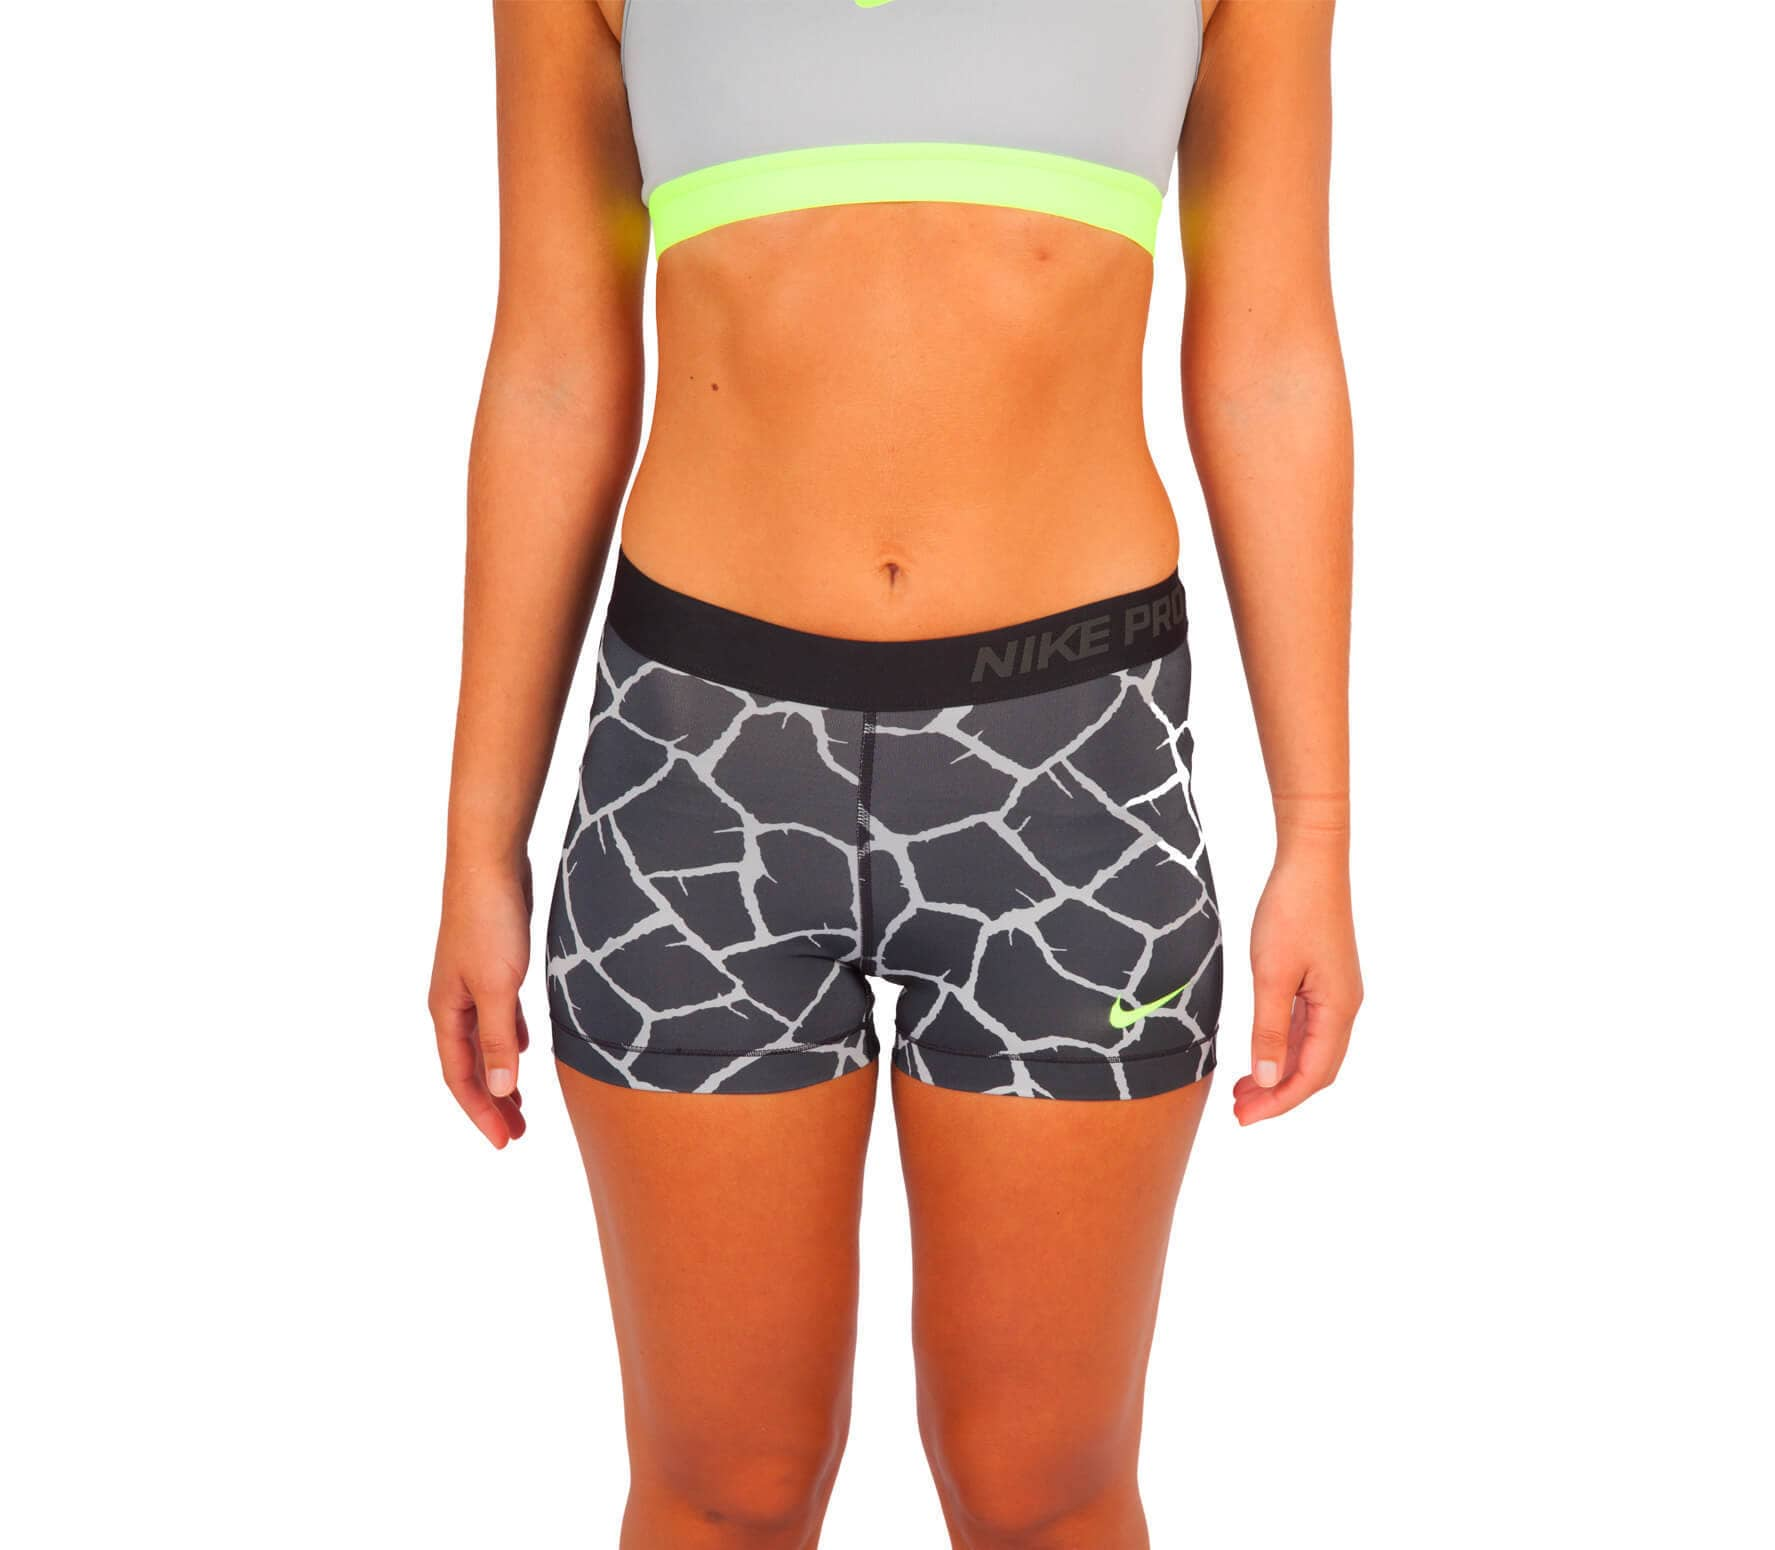 nike pro 3 inch giraffe women 39 s training shorts grey. Black Bedroom Furniture Sets. Home Design Ideas